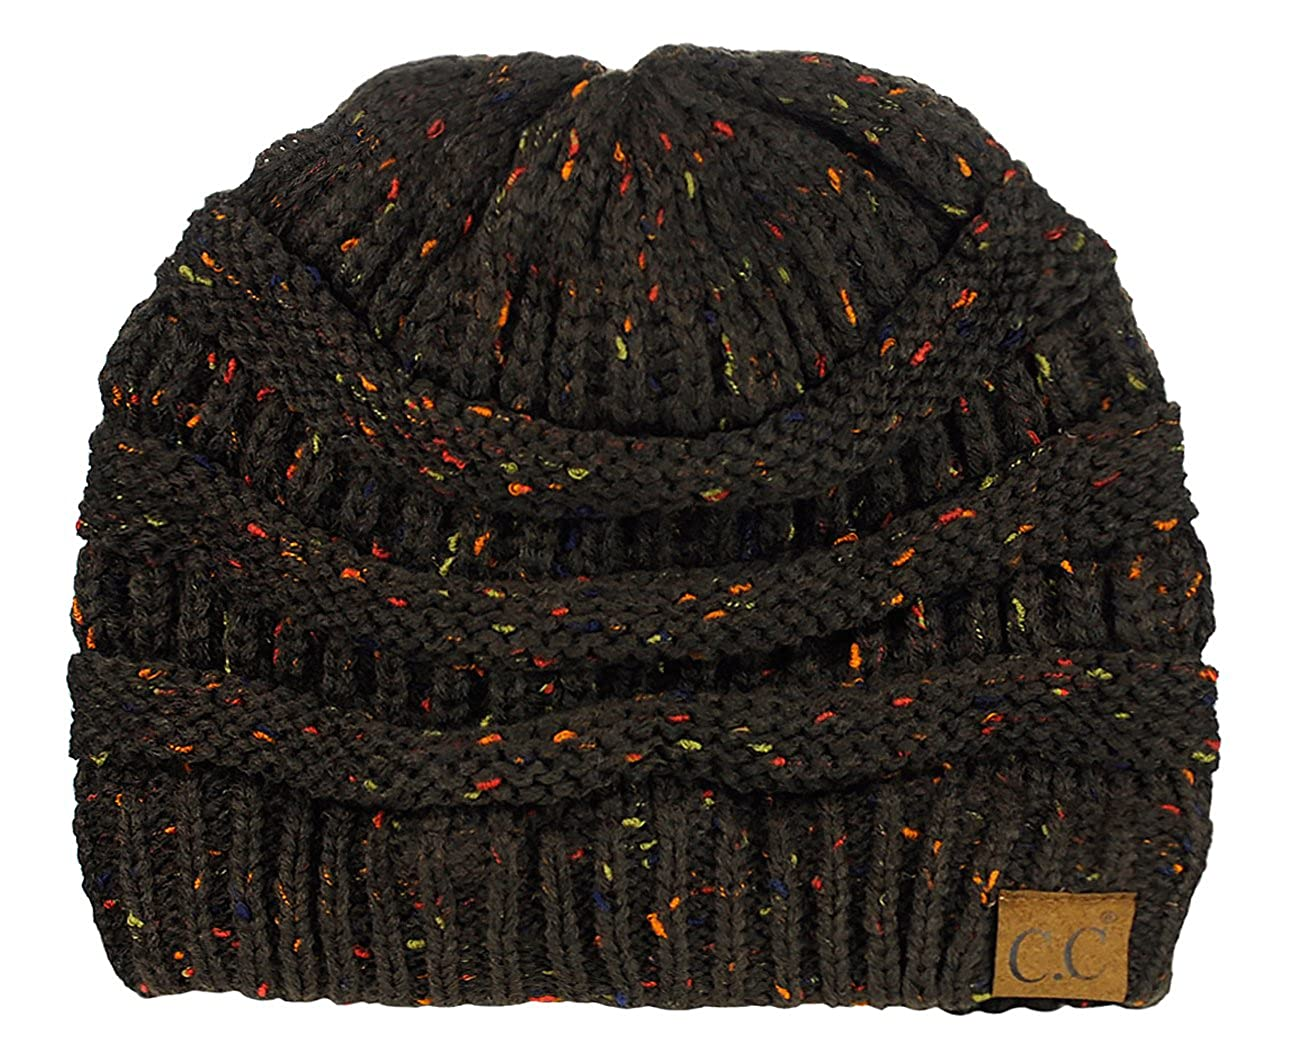 C.C Unisex Colorful Confetti Soft Stretch Cable Knit Beanie Skull Cap HAT33-BK